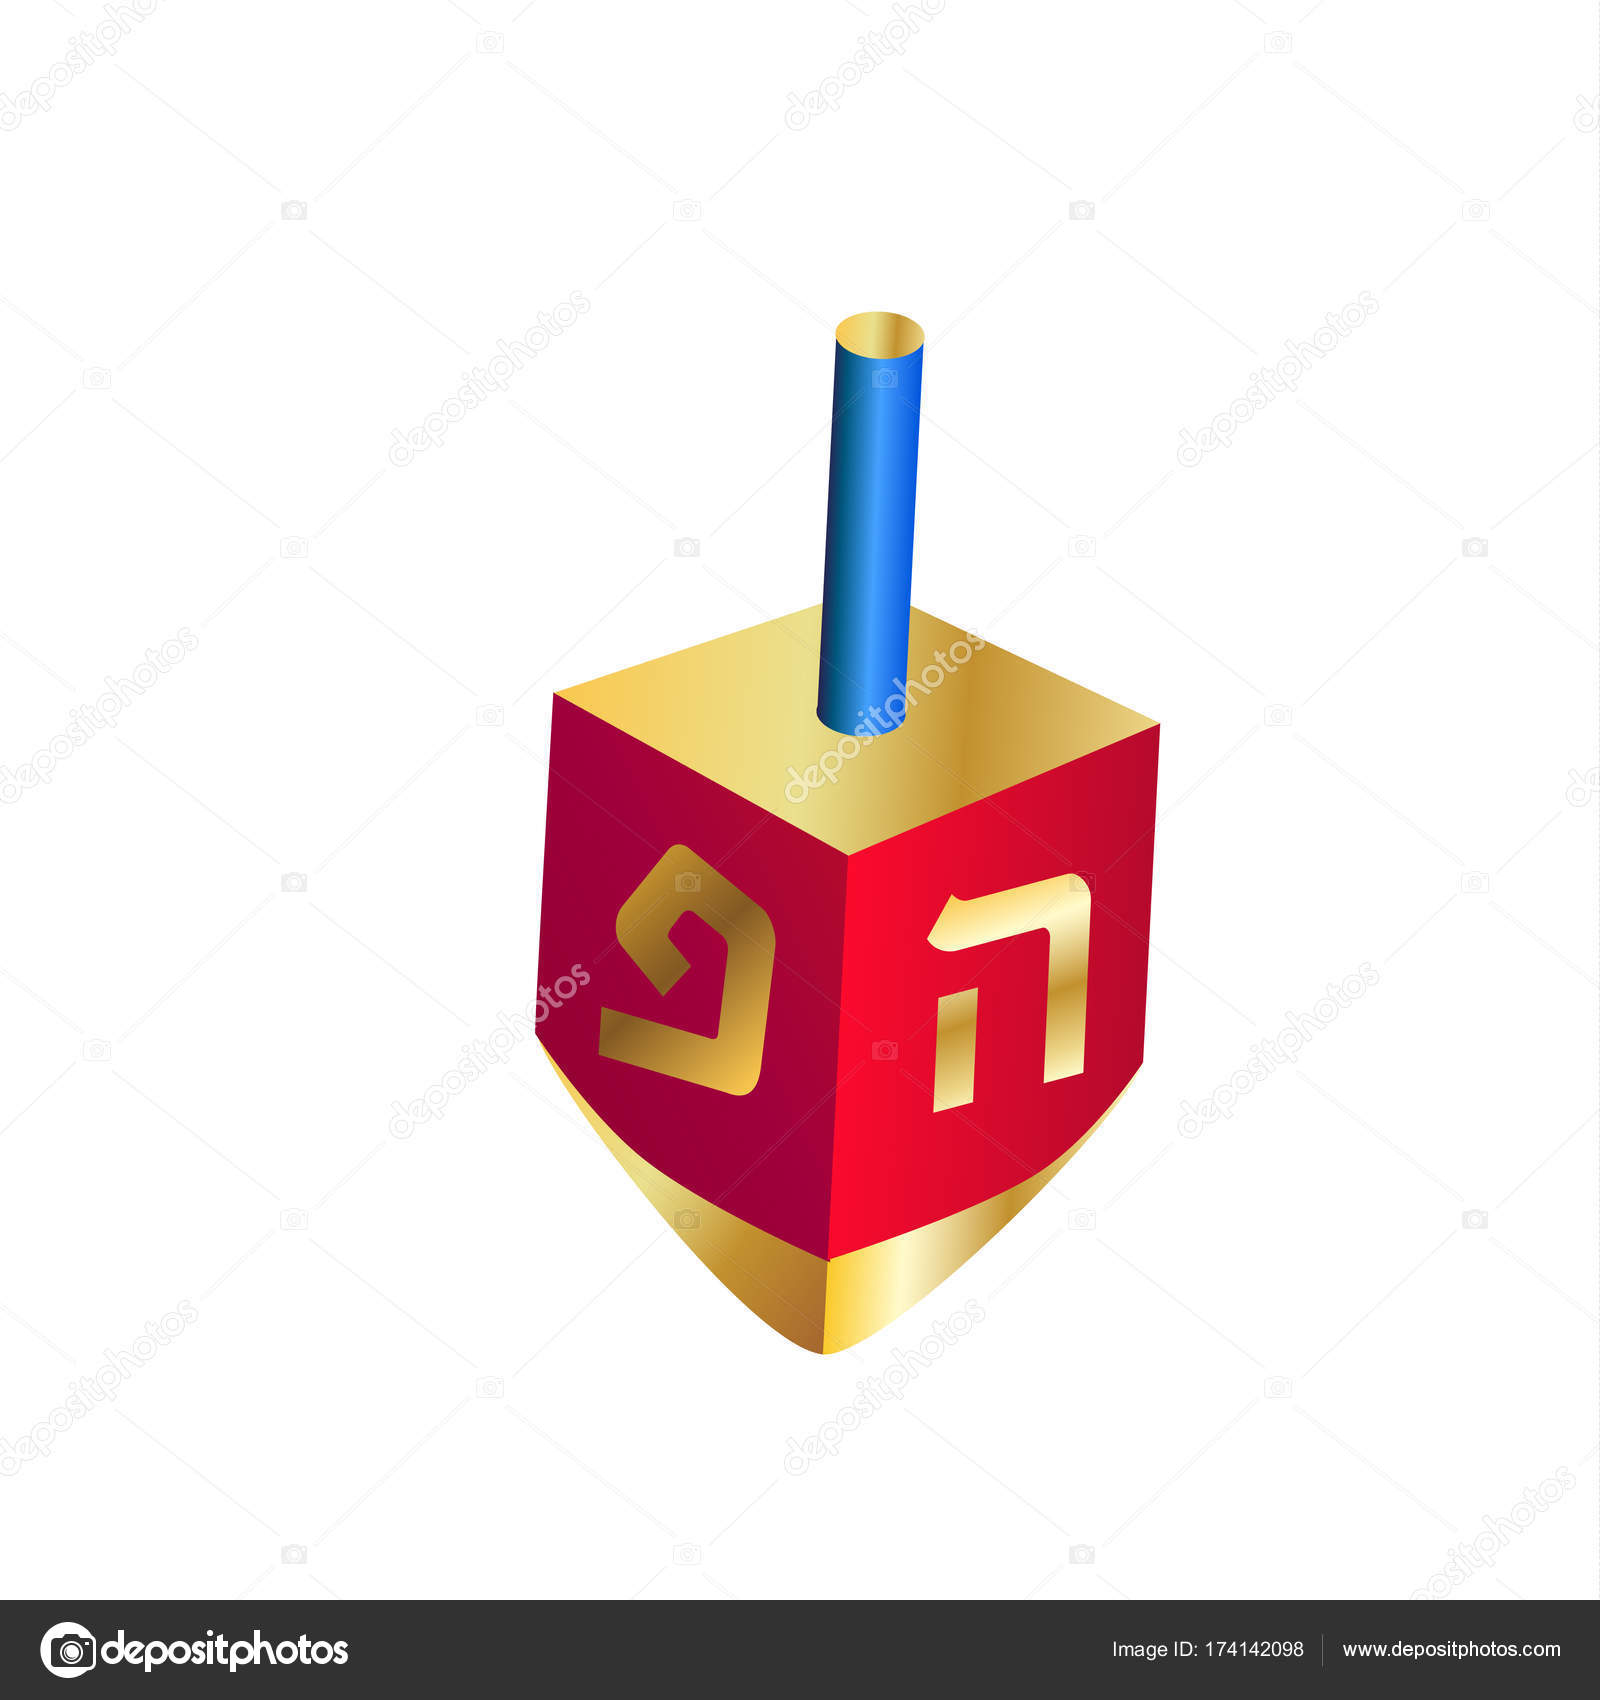 Dreidel Icon Hanukkah Festival Of Lights Gold And Red Menorah Lighting Diagram Happy Symbol Wooden Toy Spinning Top Isolated On White Background Vector Chanukah Jewish Holiday Flat Logo